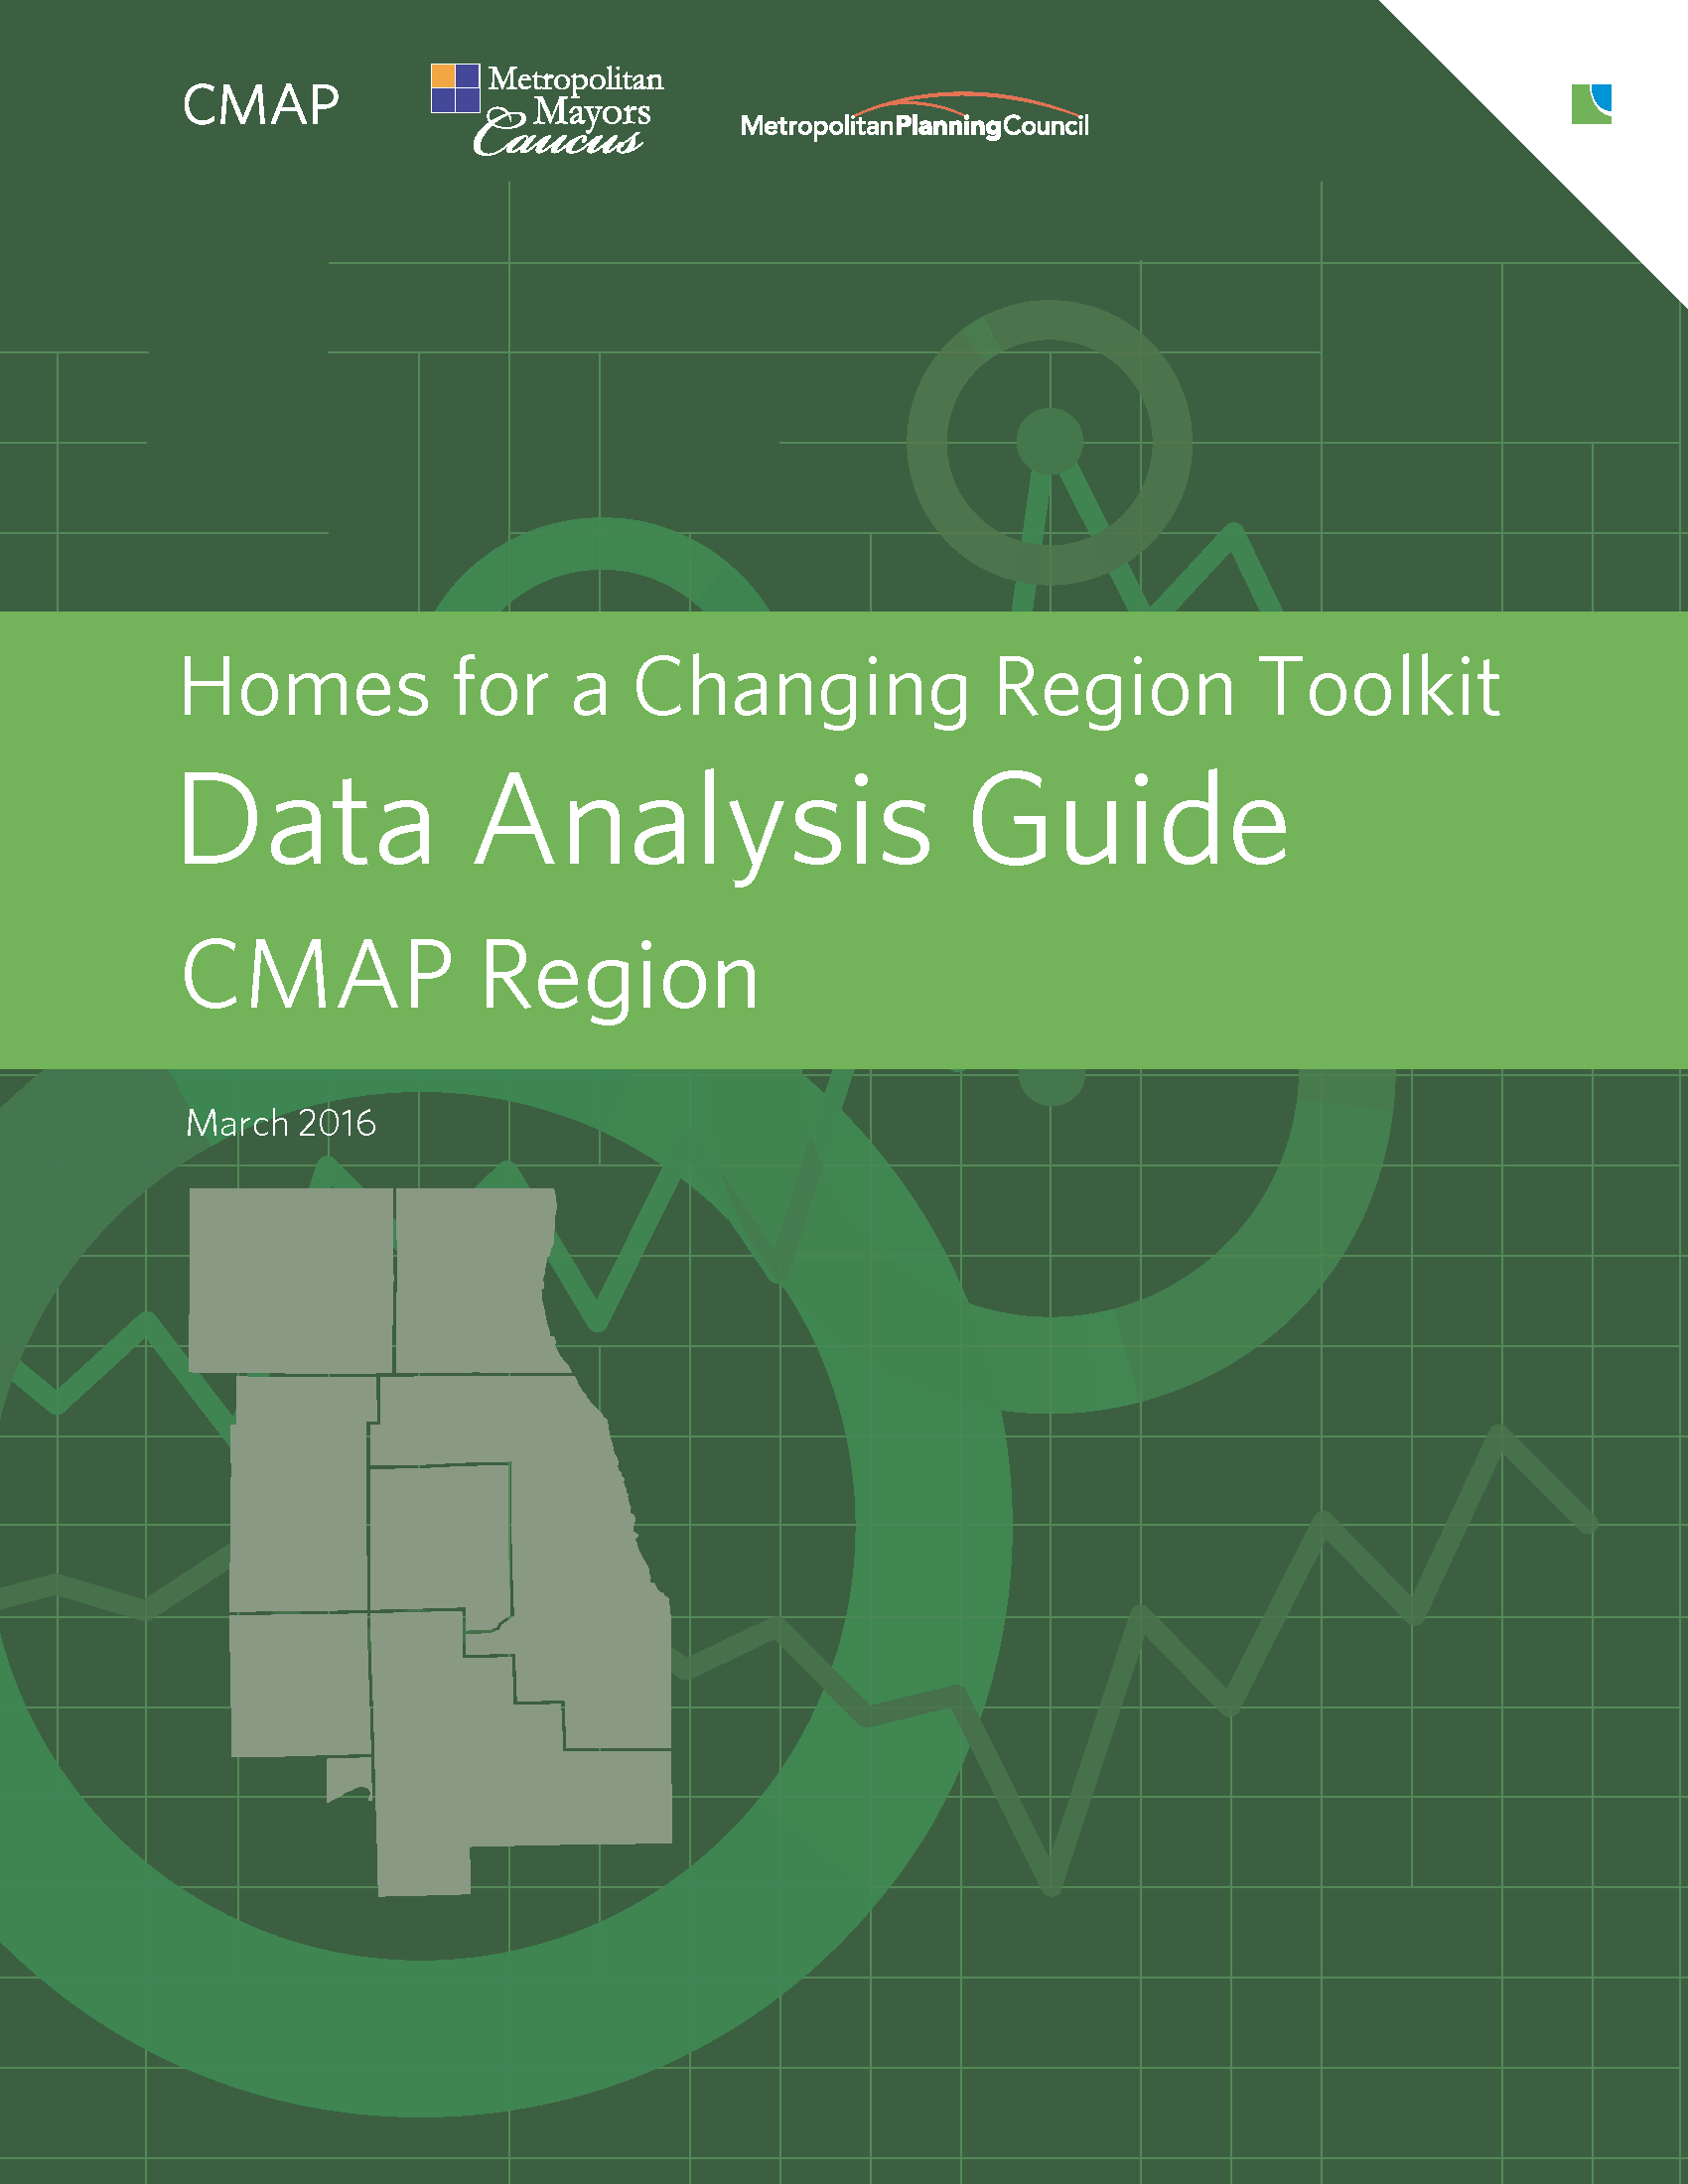 FY16-0060 2016 HOMES TOOLKIT DATA ANALYSIS GUIDE COVER - CMAP REGION_Page_1.png